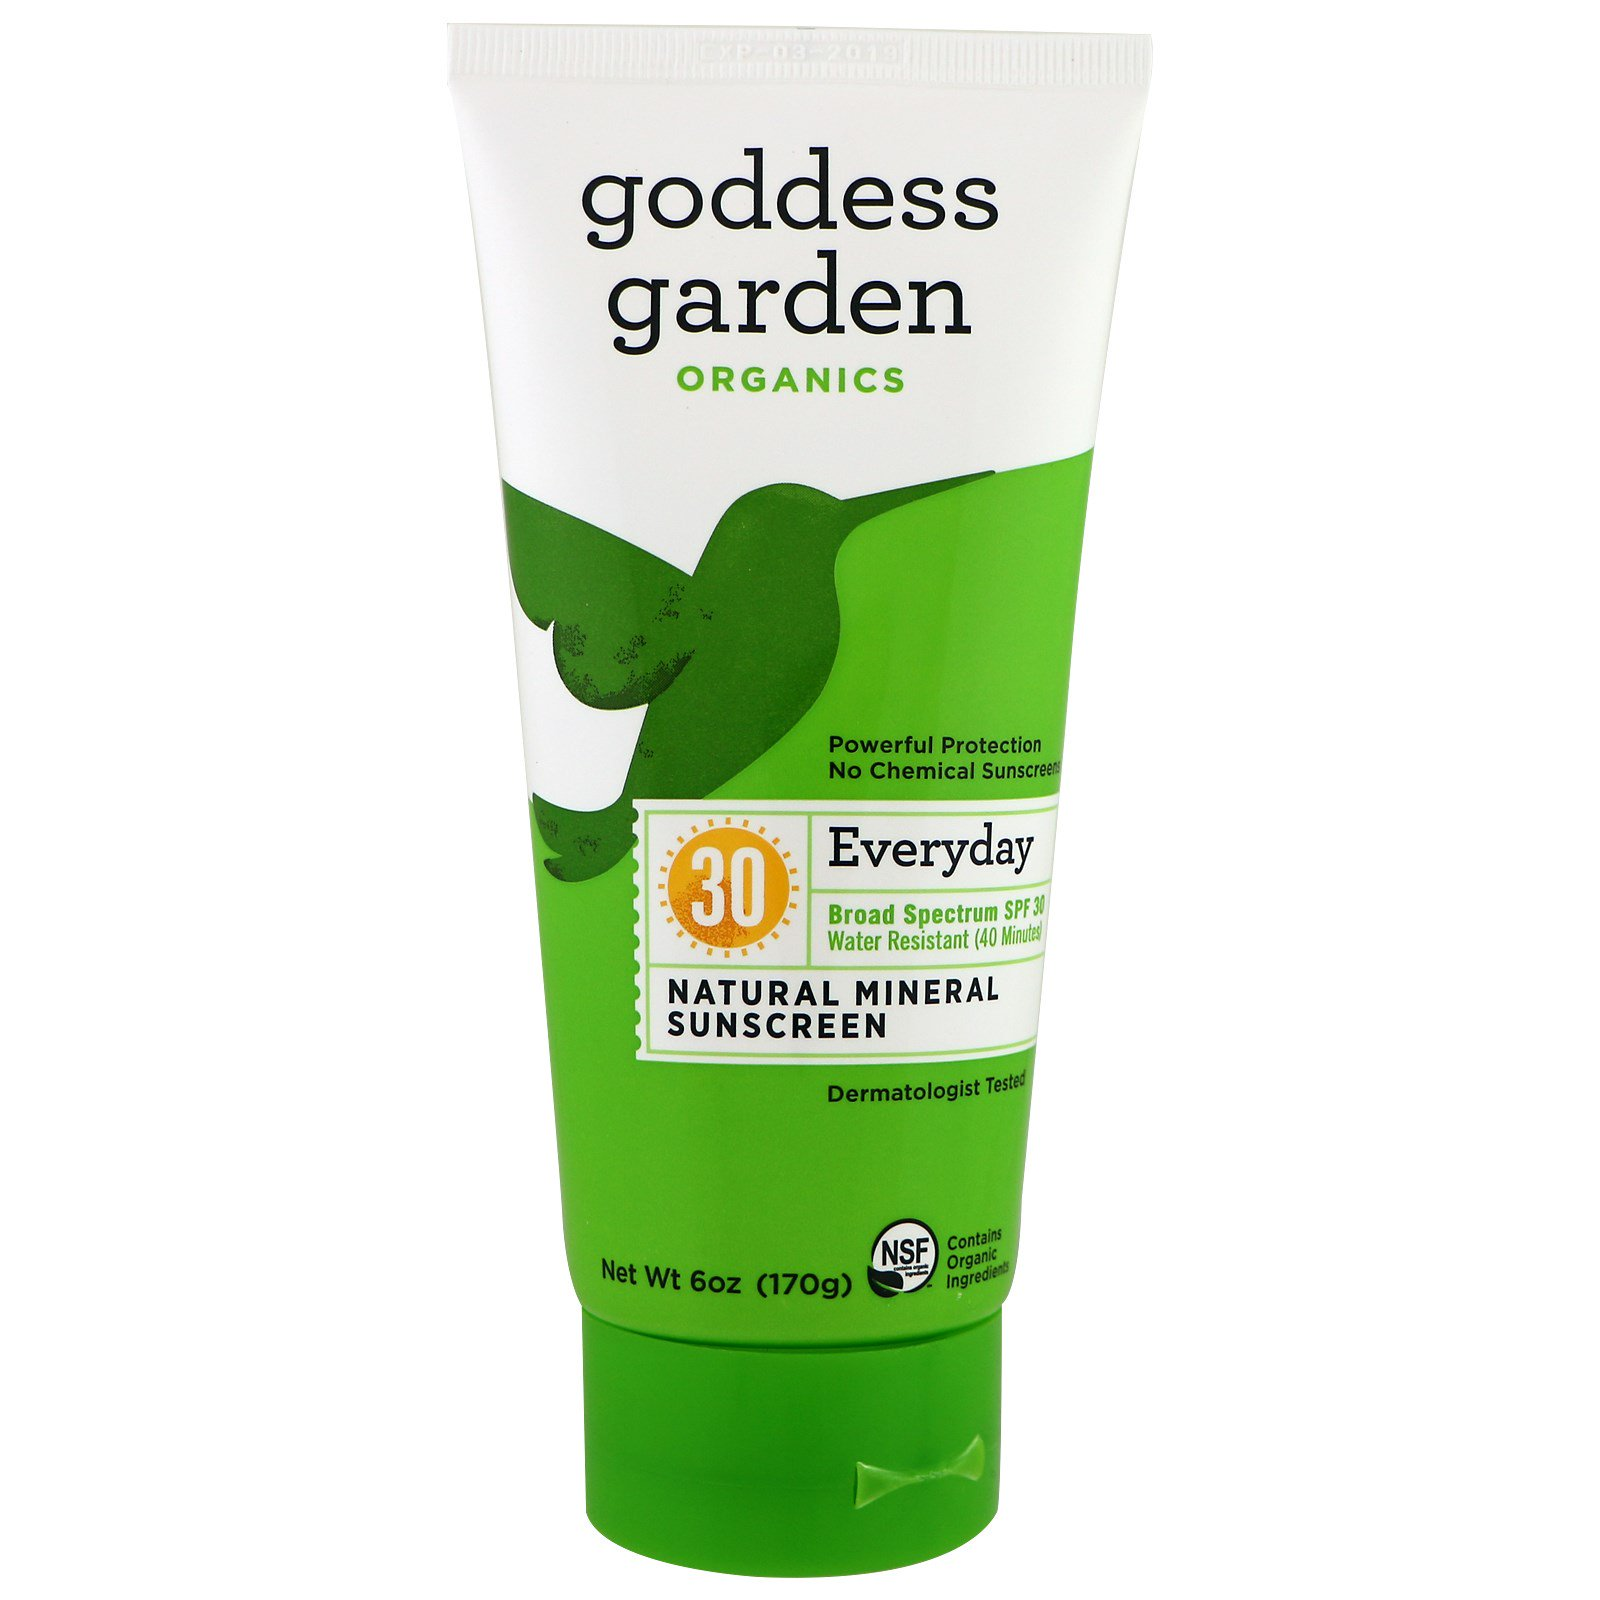 garden with mineral created family natural she sunscreen organics husband if needed paul goddess origins products did well was her other felt families review as clean organic blog together